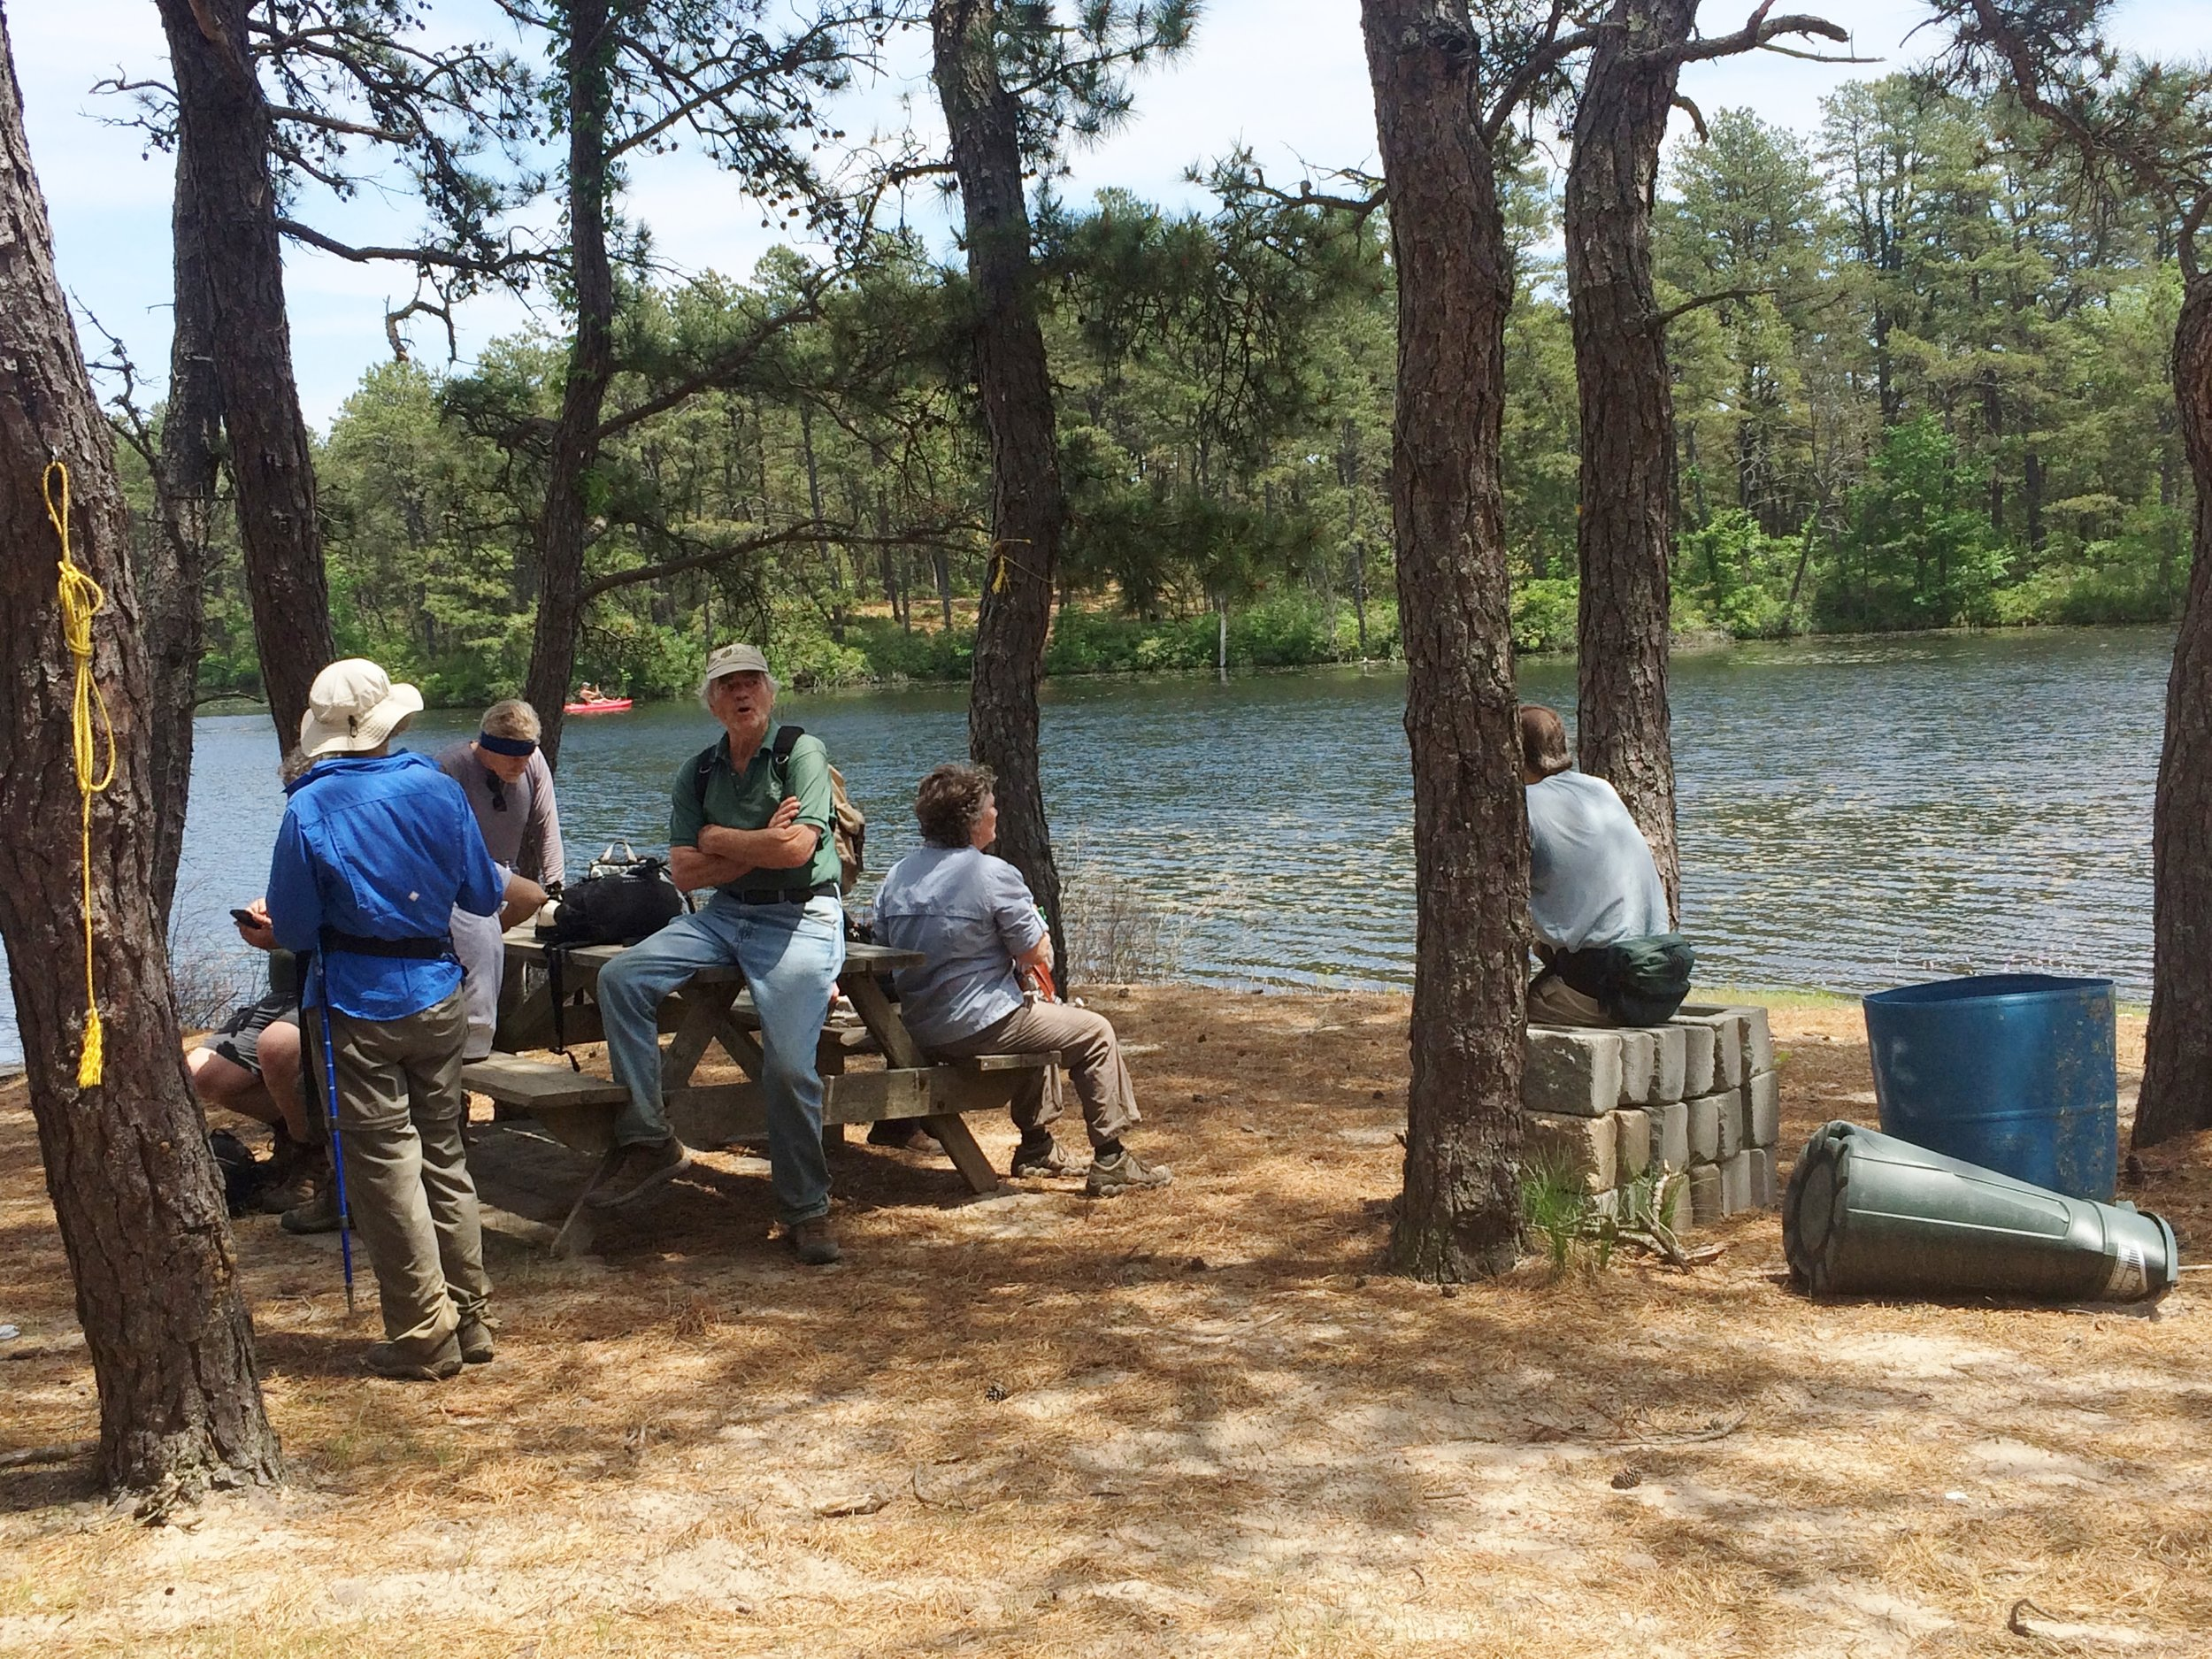 A respite at the picnic grounds on Maple Springs Reservoir (Part II)